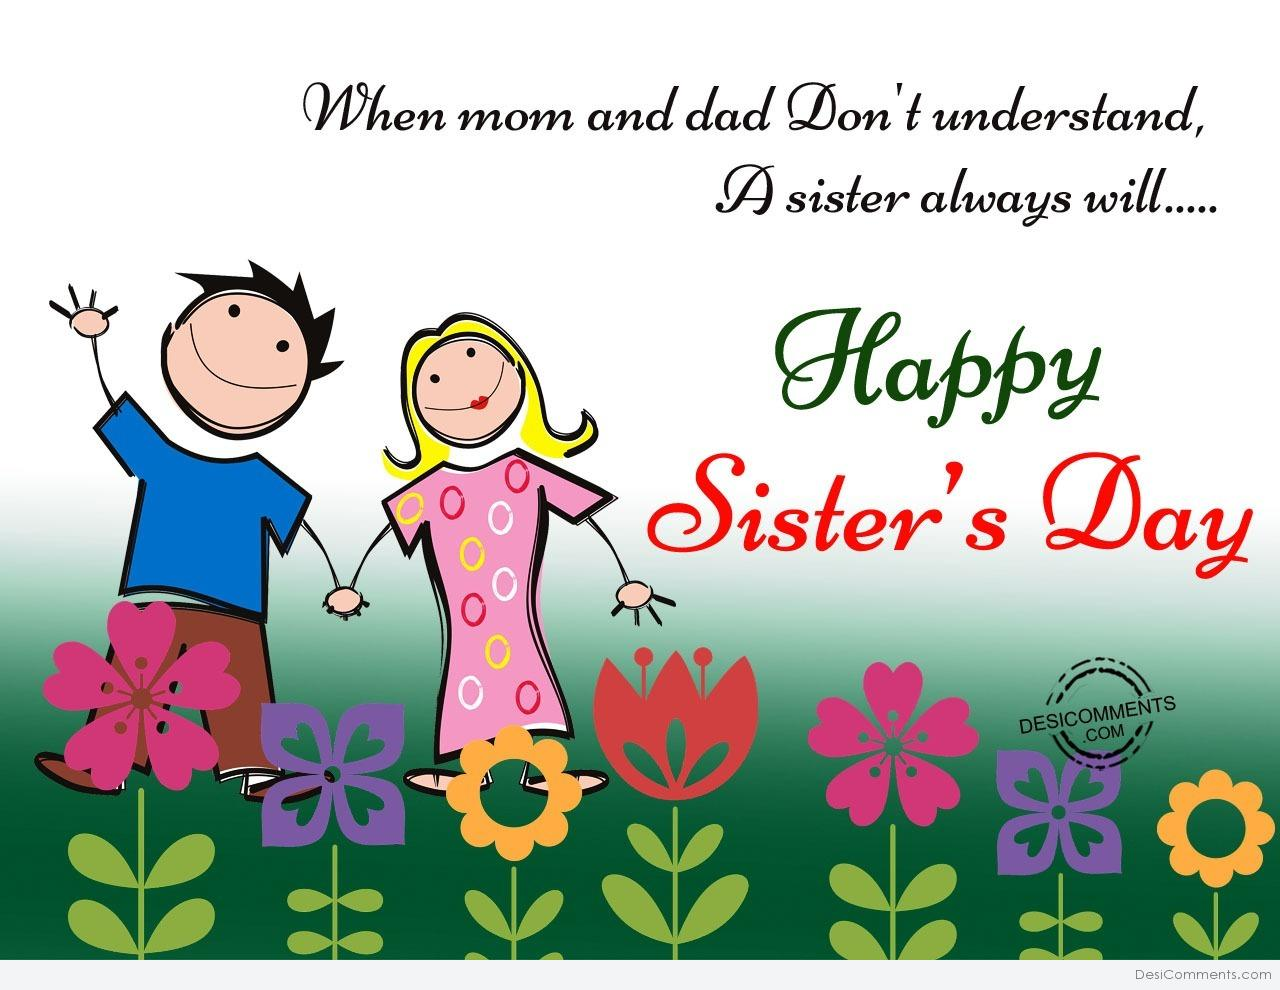 Sister's Day Pictures, Images, Graphics for Facebook, Whatsapp